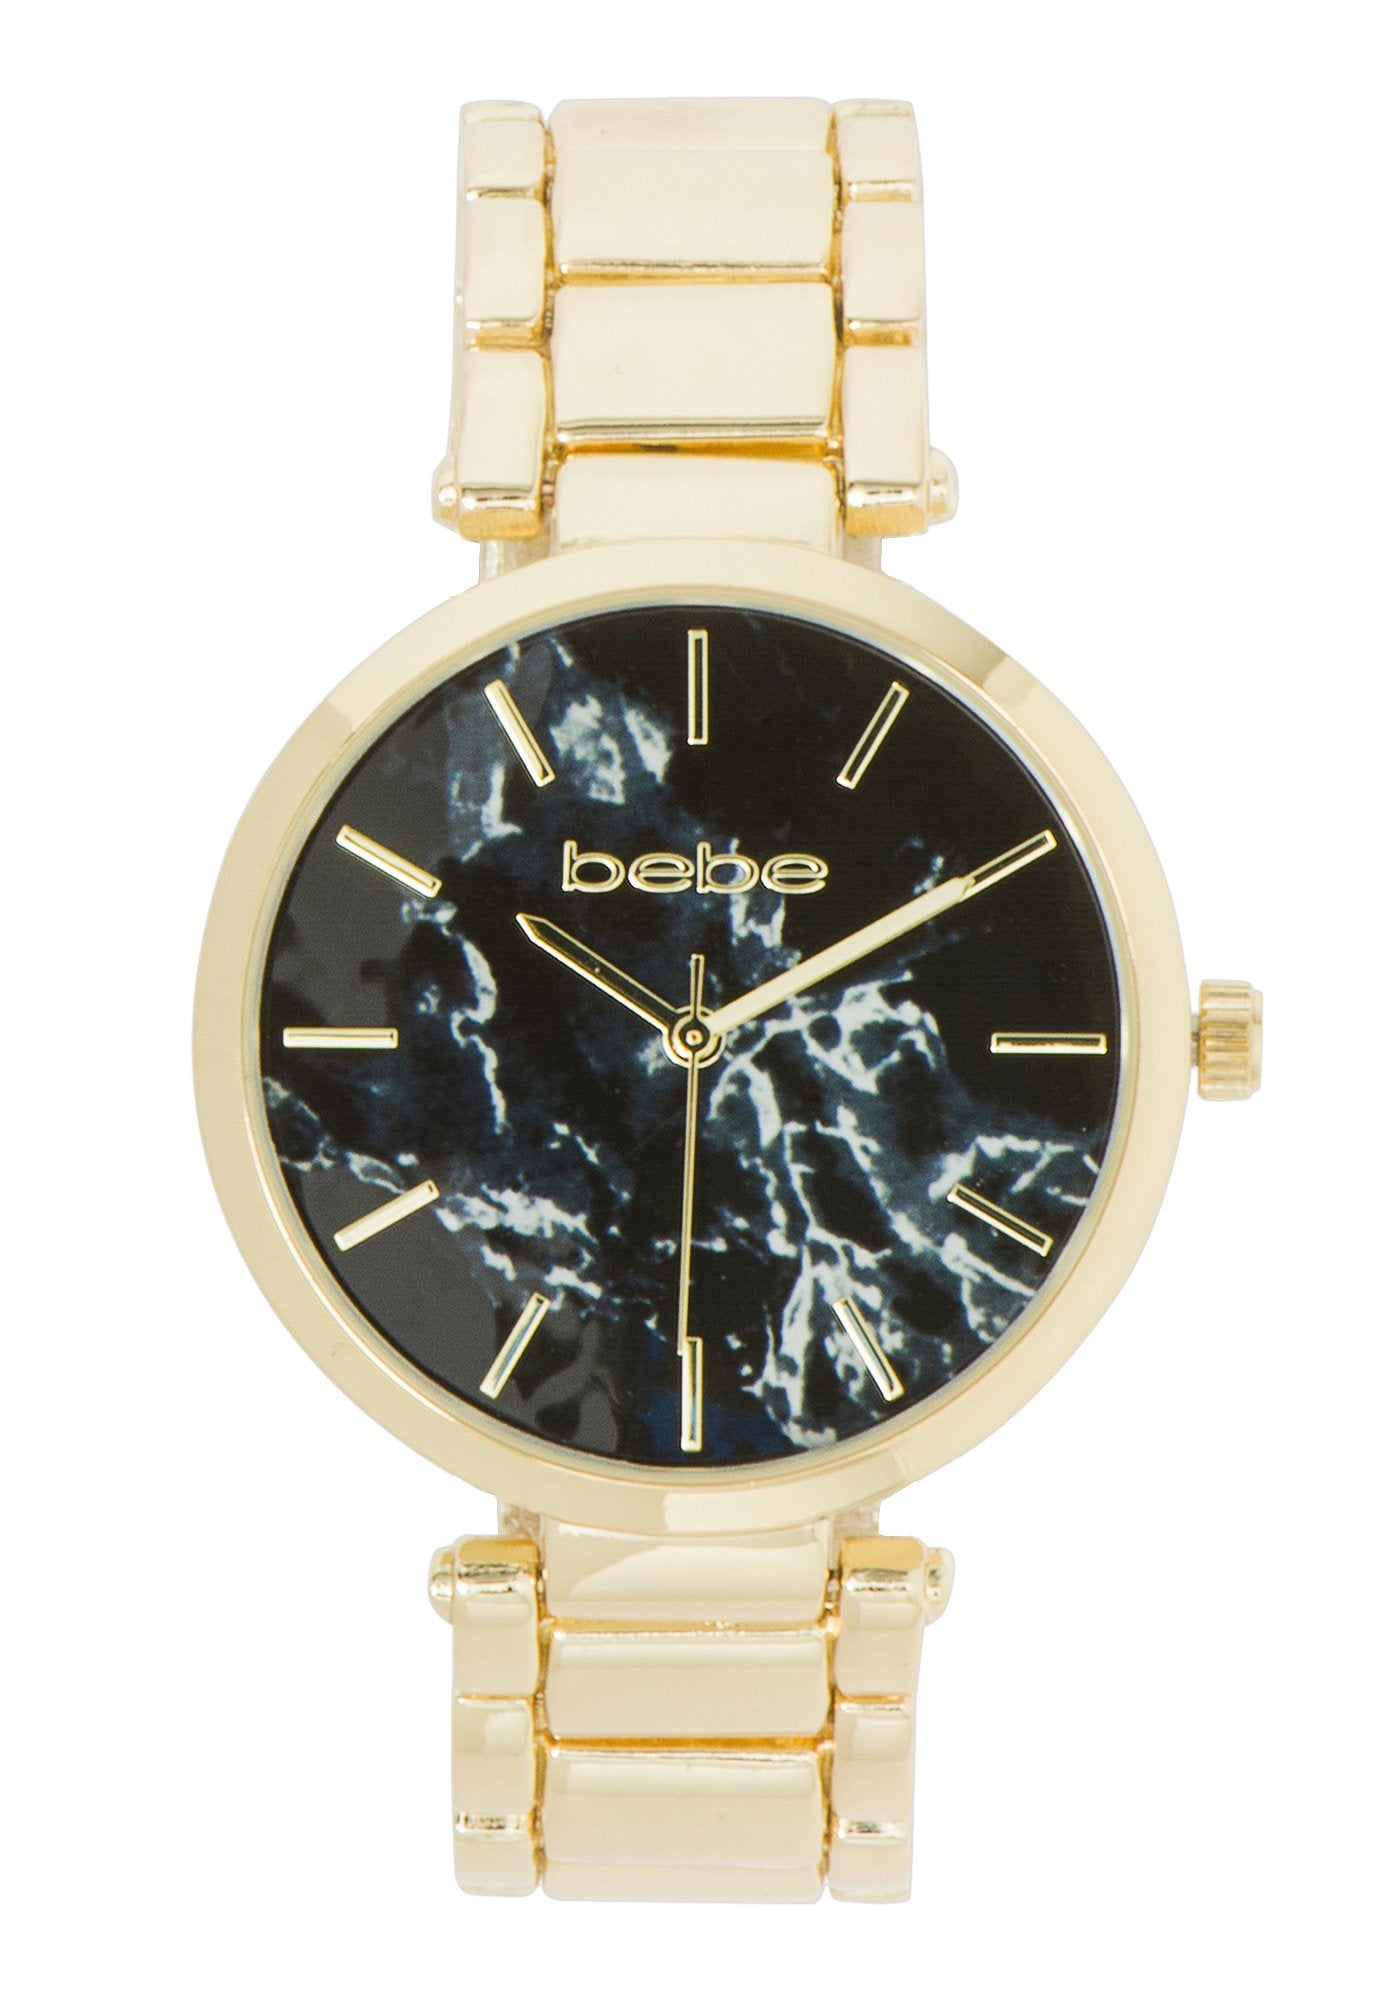 Bebe Women's Marble Face Dial Watch in BLACK/GOLD Metal